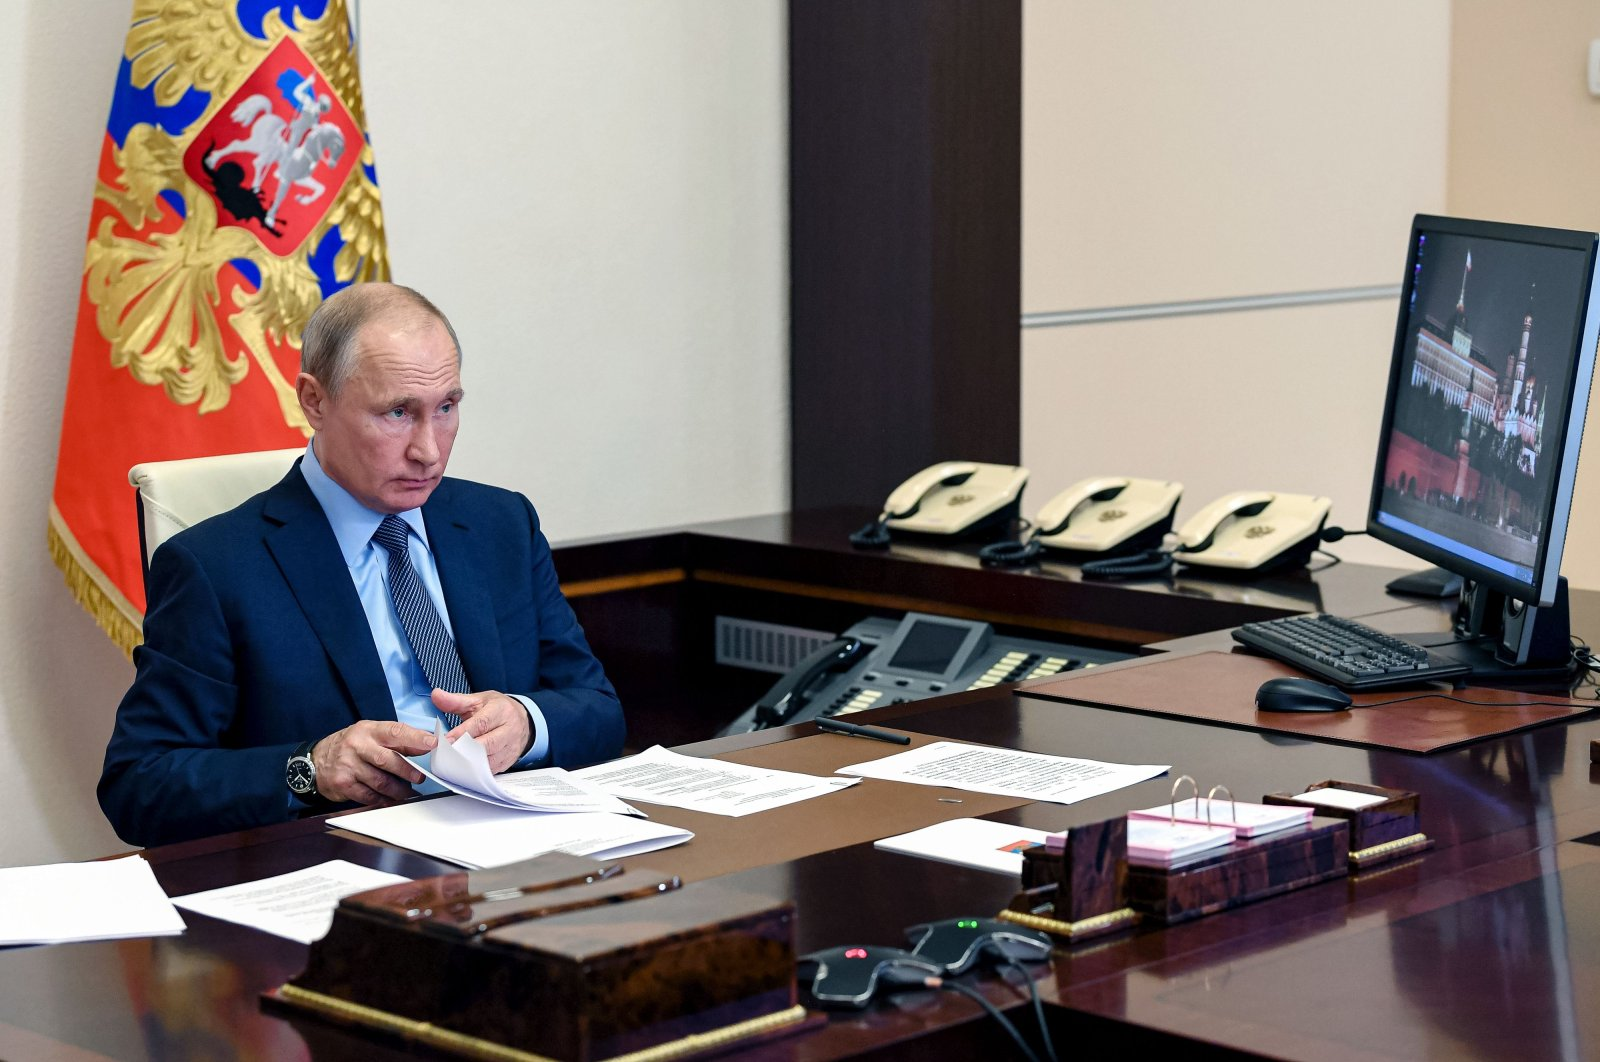 Russian President Vladimir Putin attends a meeting with health workers via videoconference at the Novo-Ogaryovo state residence outside Moscow, Russia, June 20, 2020. (AFP Photo)